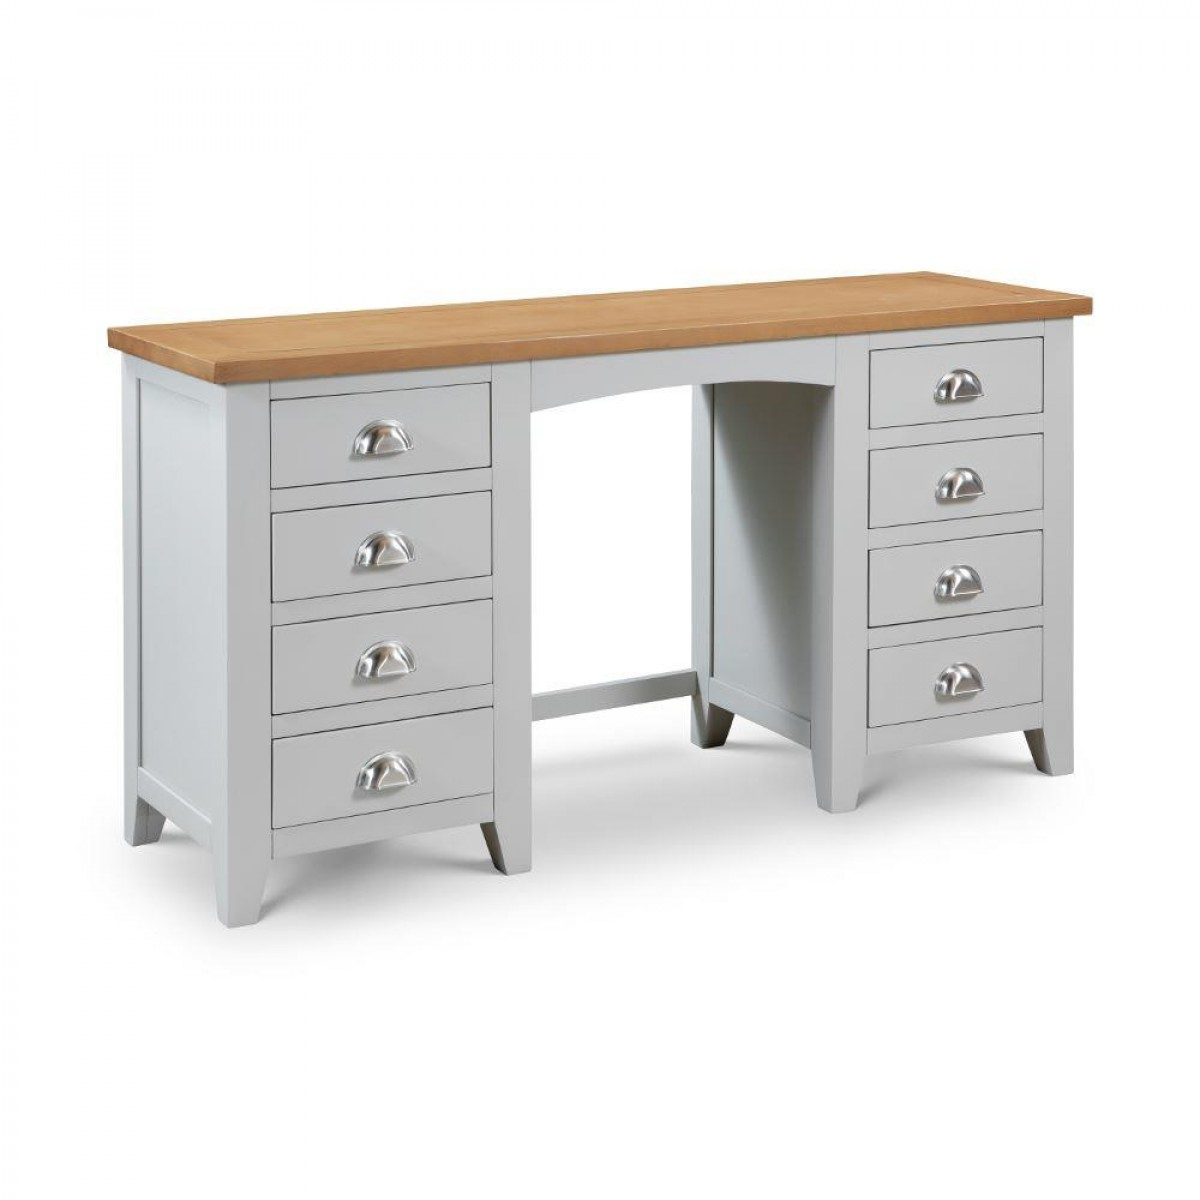 Richmond Grey and Oak Wooden Dressing Table